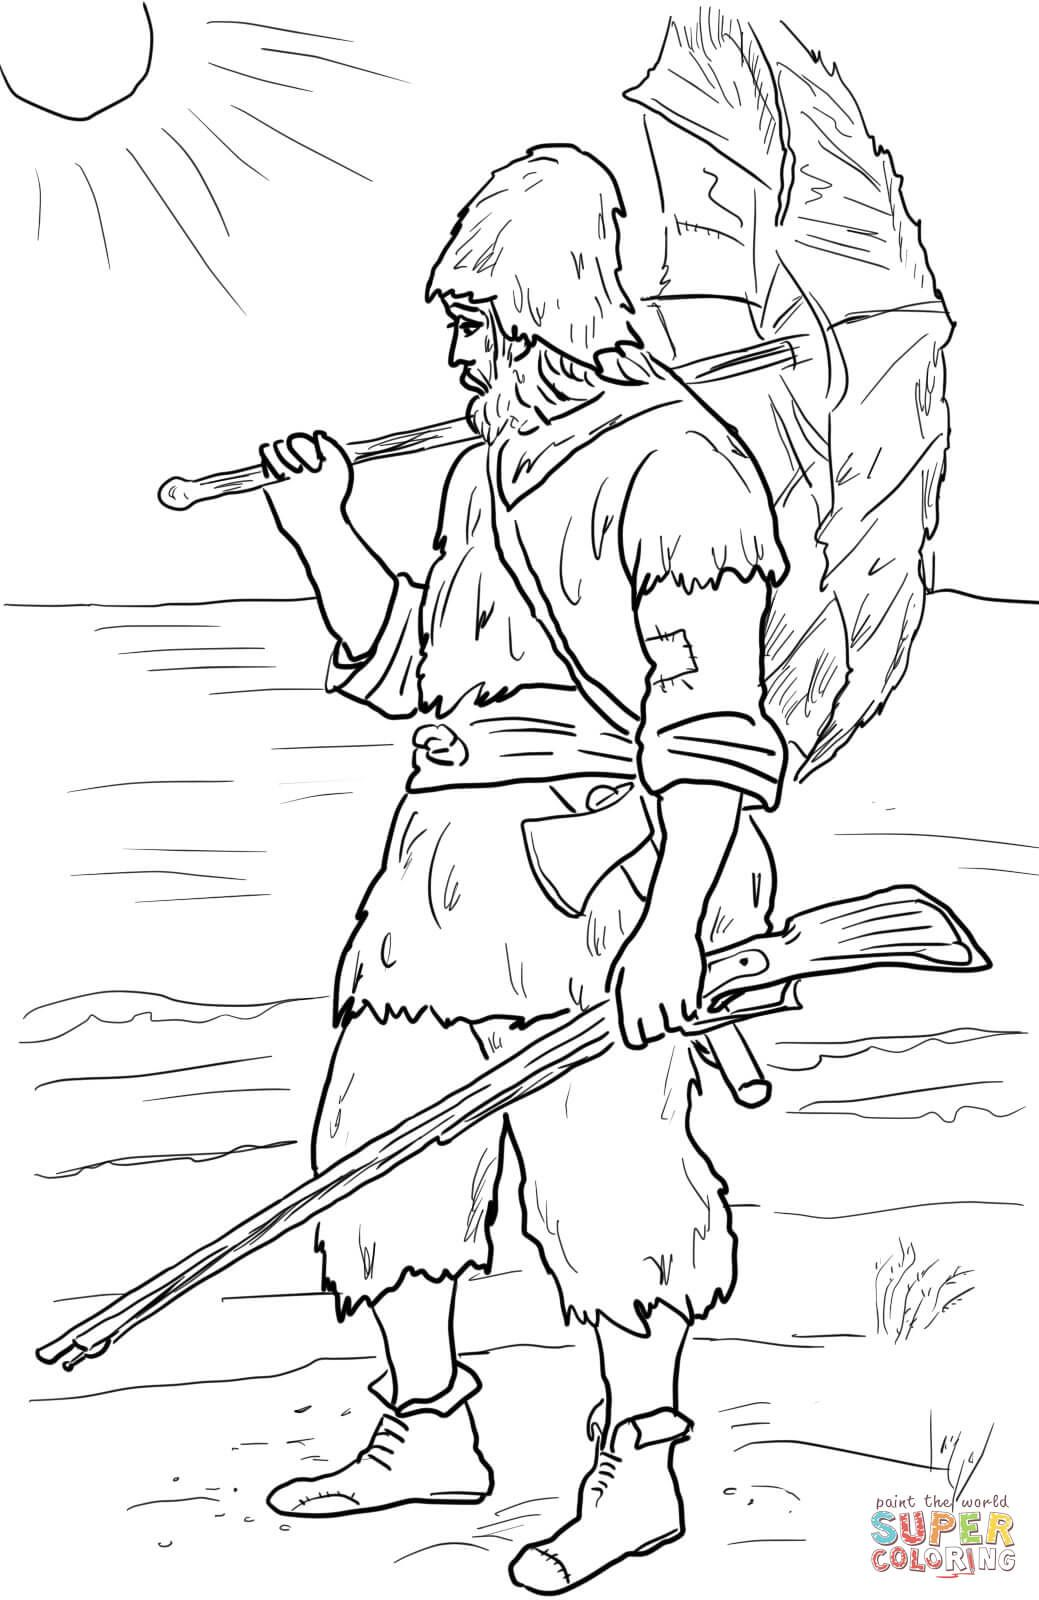 Robinson Crusoe Super Coloring Coloring Pages Robinson Crusoe